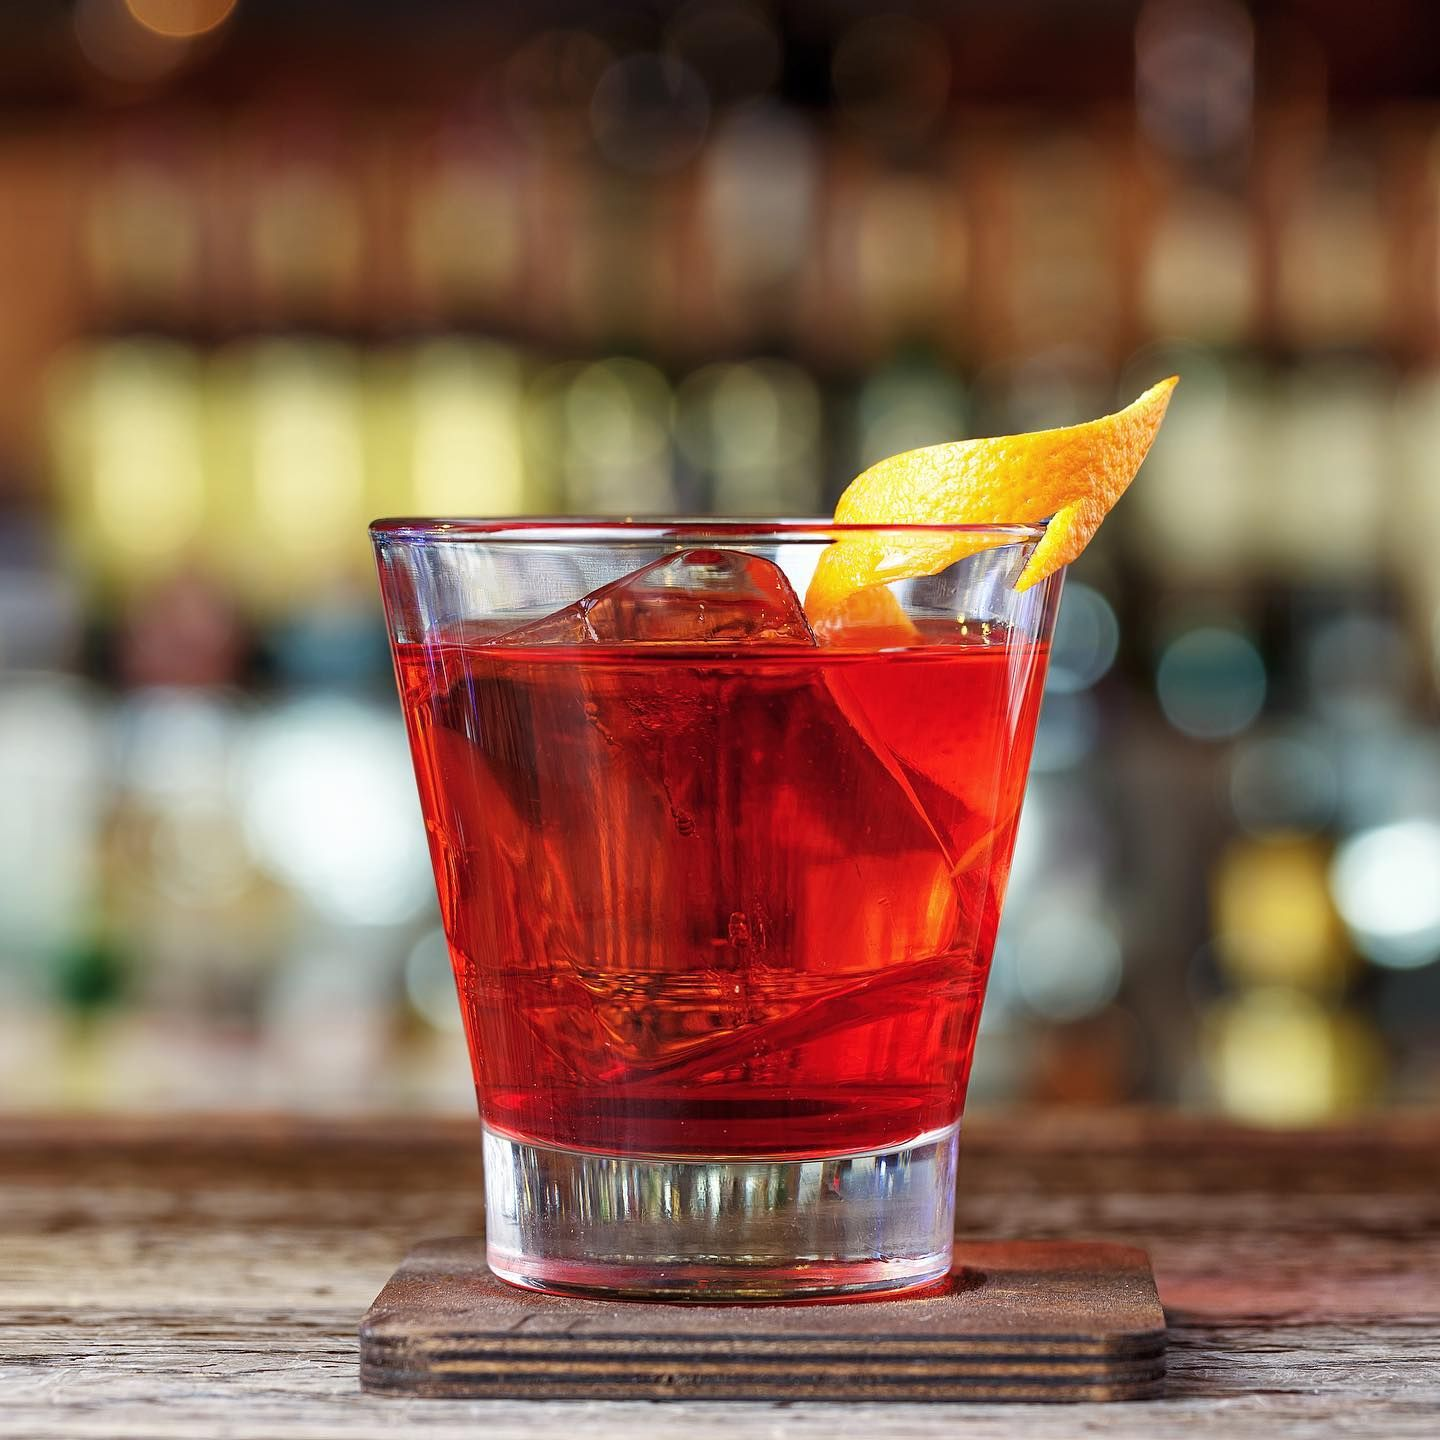 The Americano Originally Named Milano Torino Due To Campari S Origins In Milan And Vermouth Di Torino S Home Of Turin Was Lat In 2020 Campari English Wine Aperitif